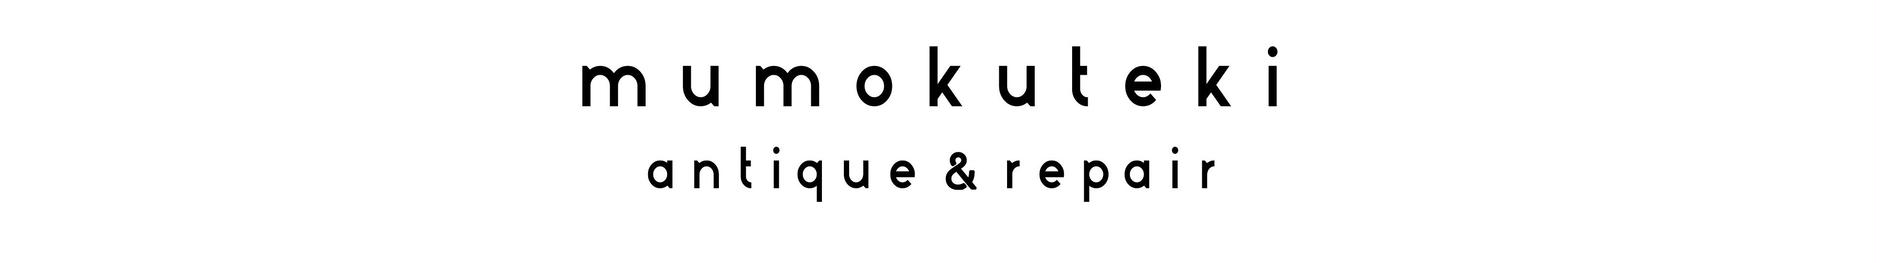 mumokuteki antique&repair